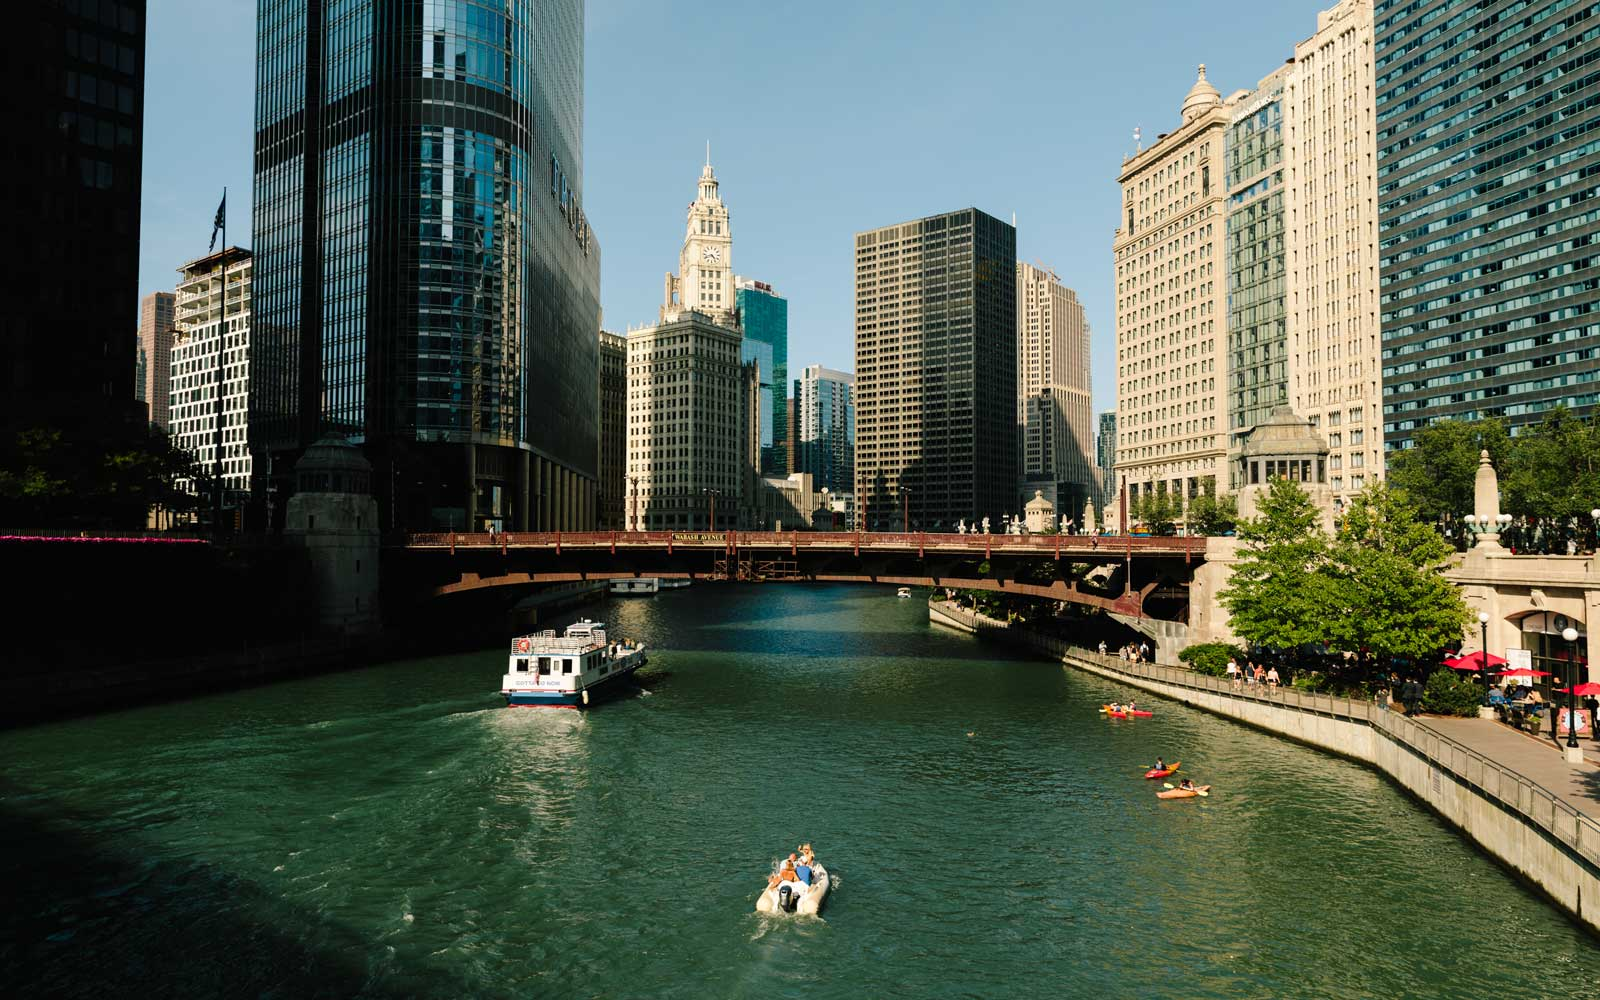 Boats on the Chicago River